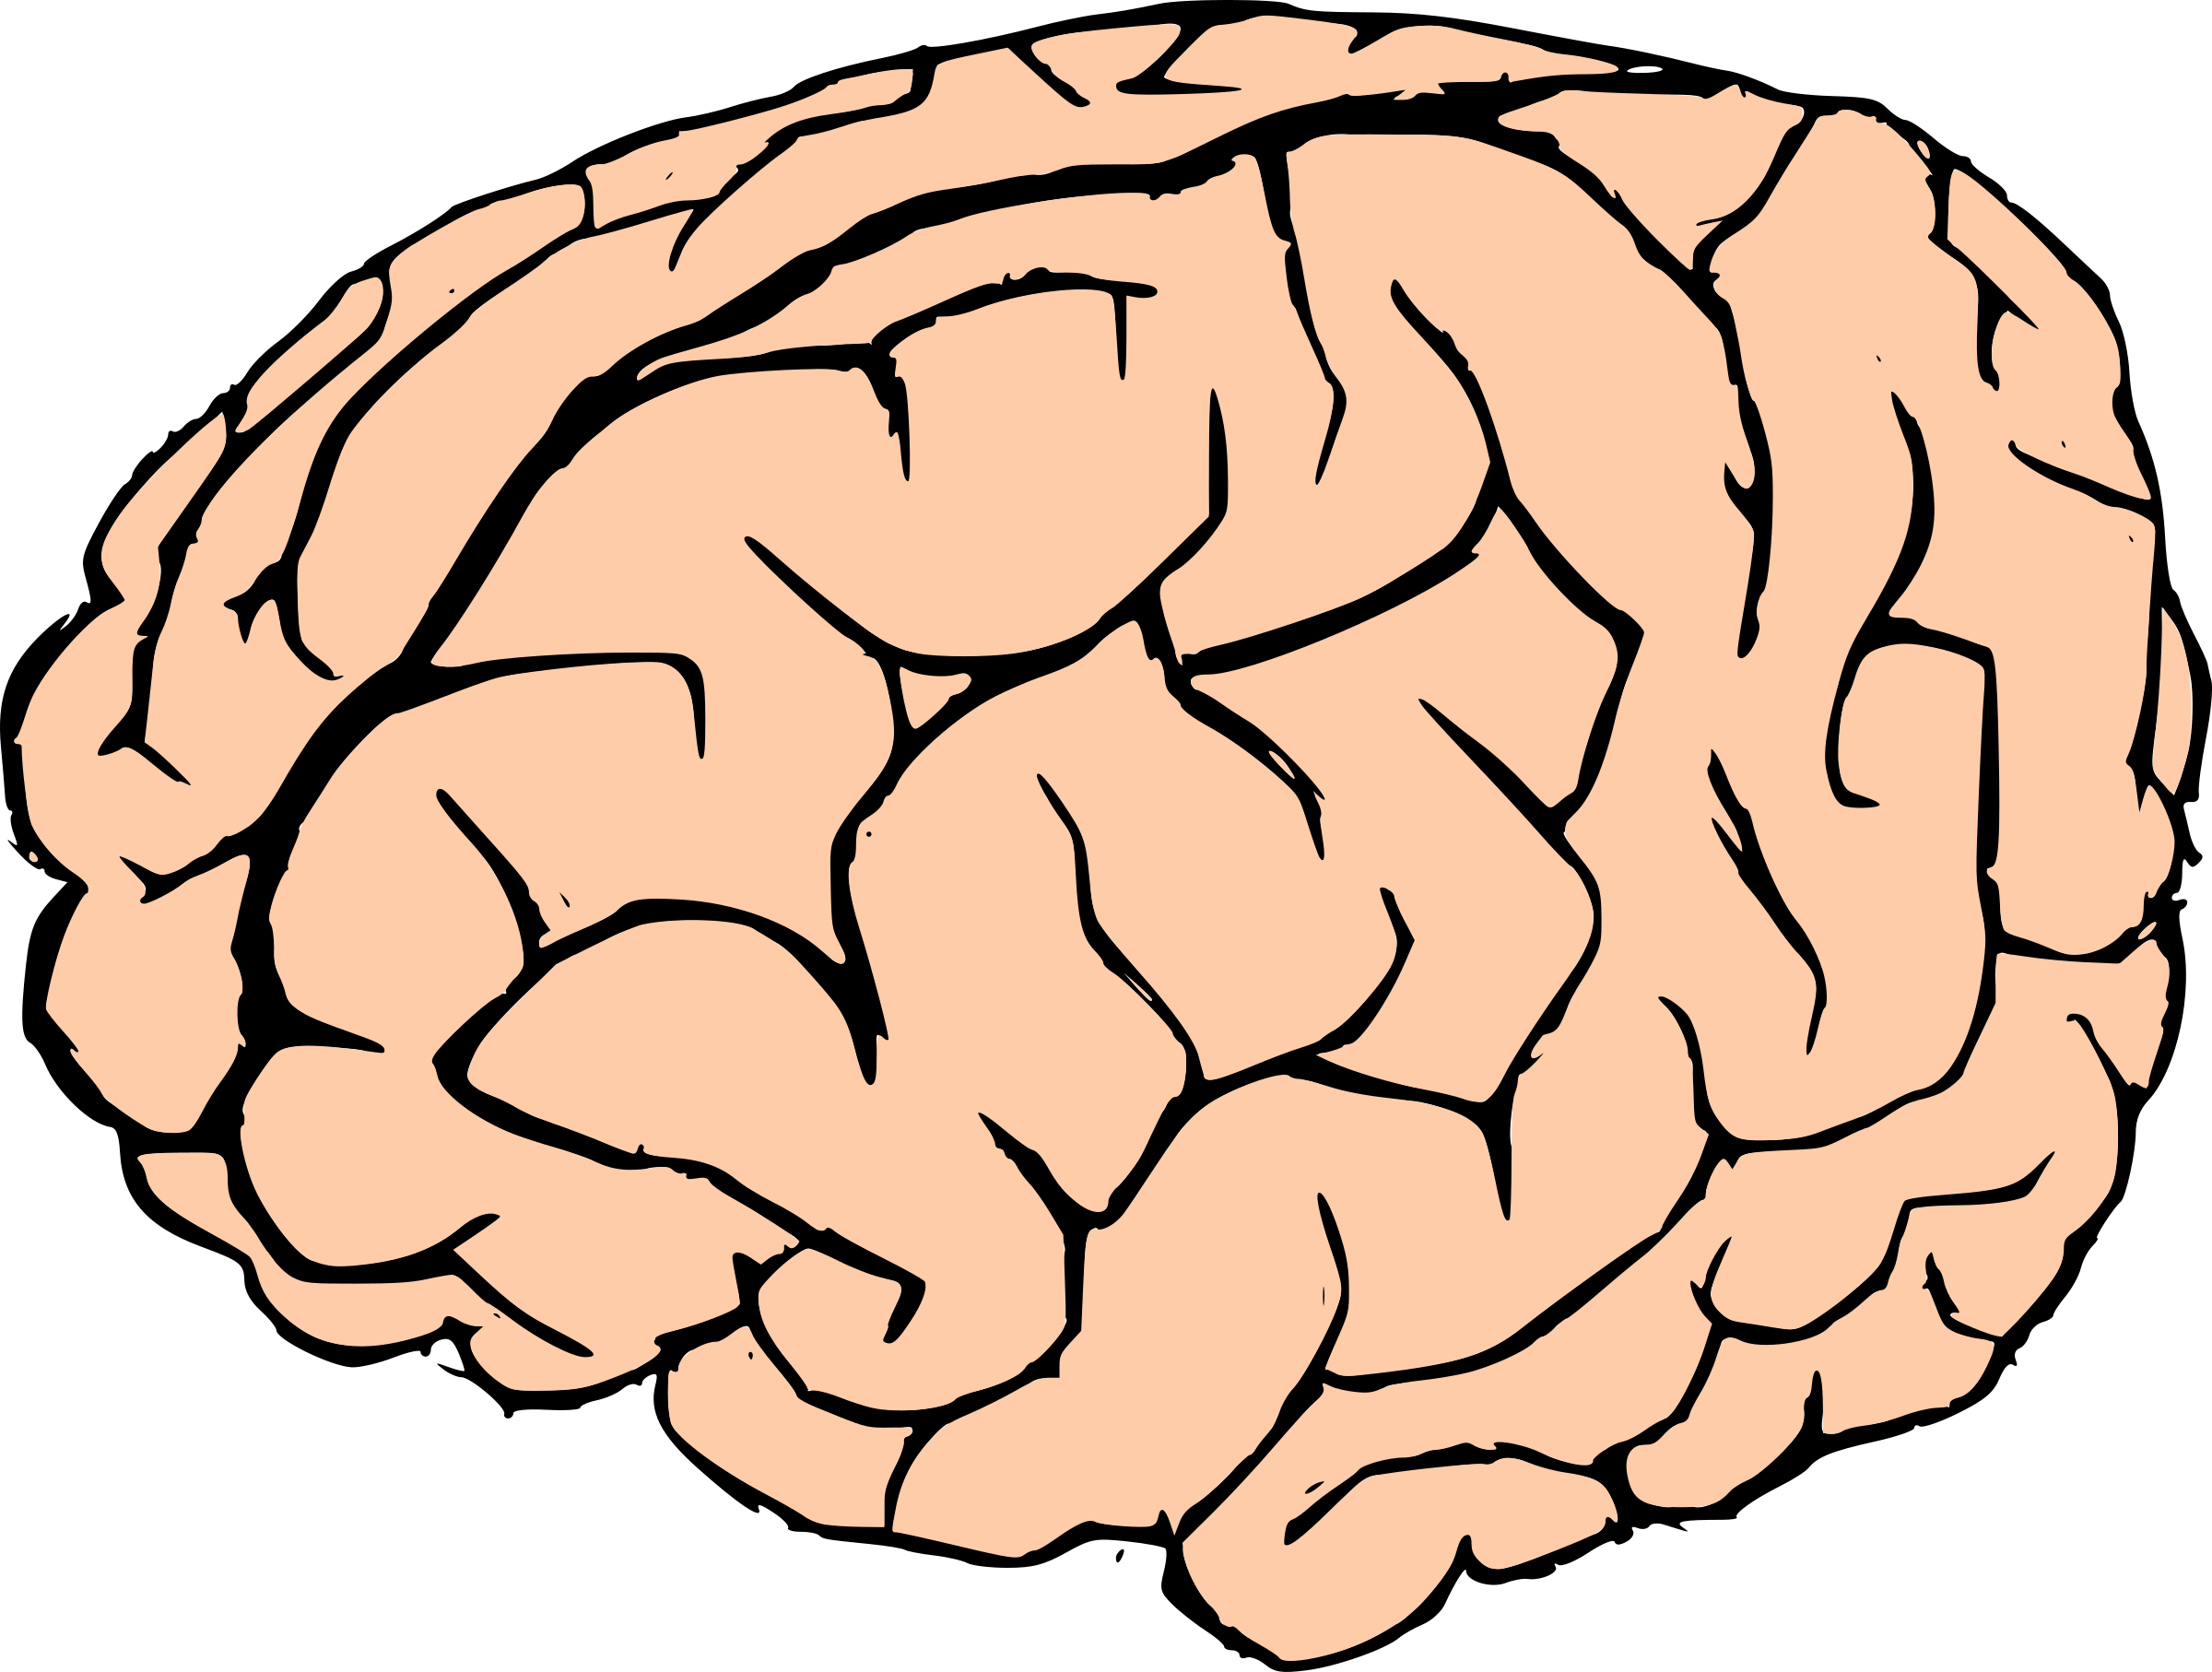 clipart free download Brain clipart. .